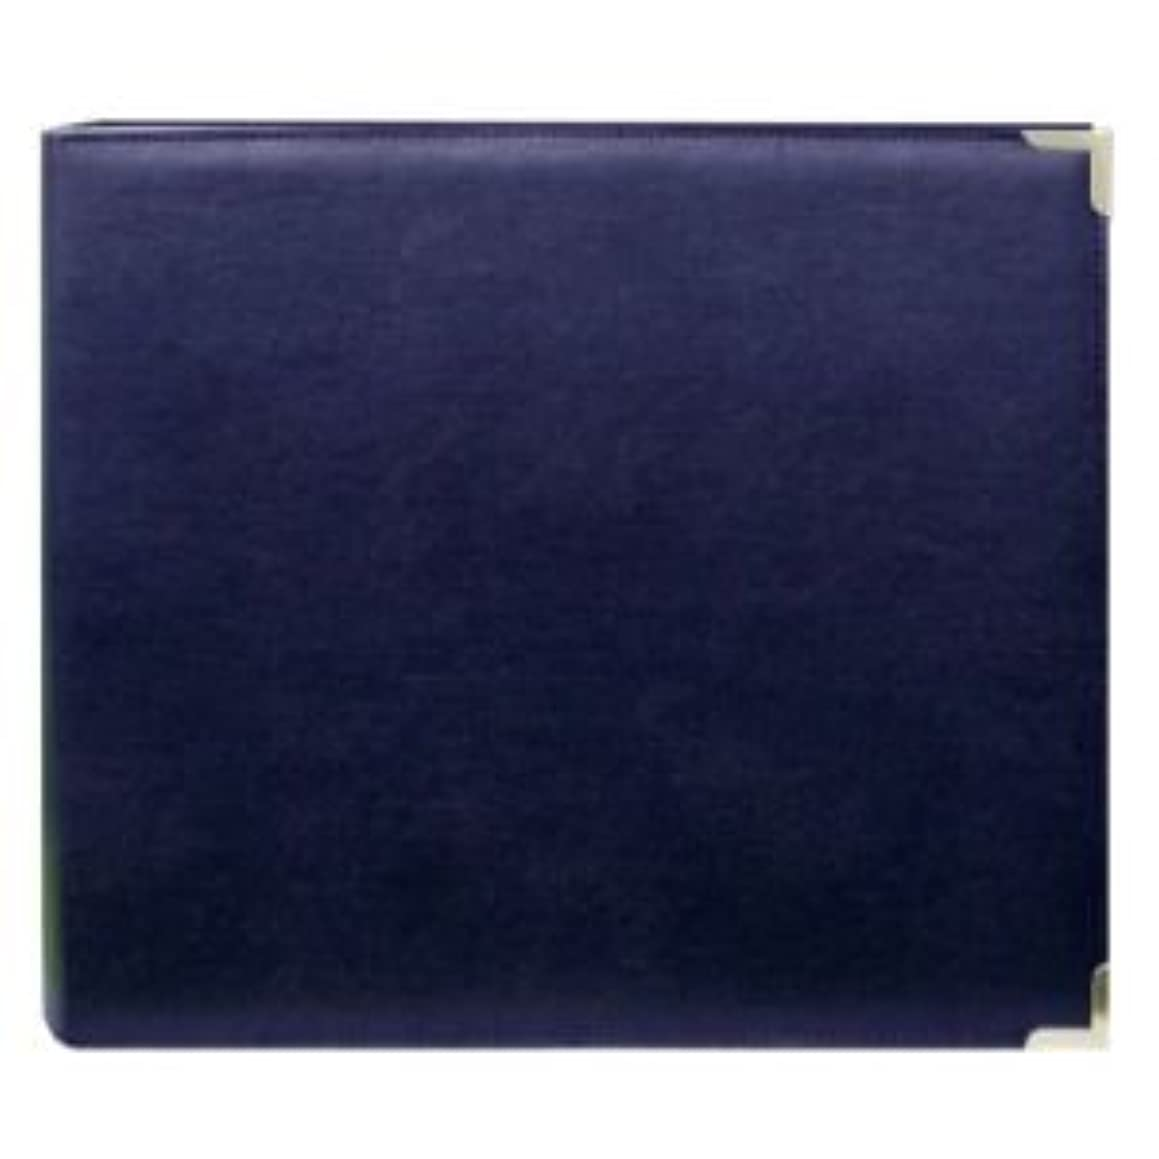 Pioneer 3-Ring Sewn Cover Album 12x12-Navy Blue Oxford